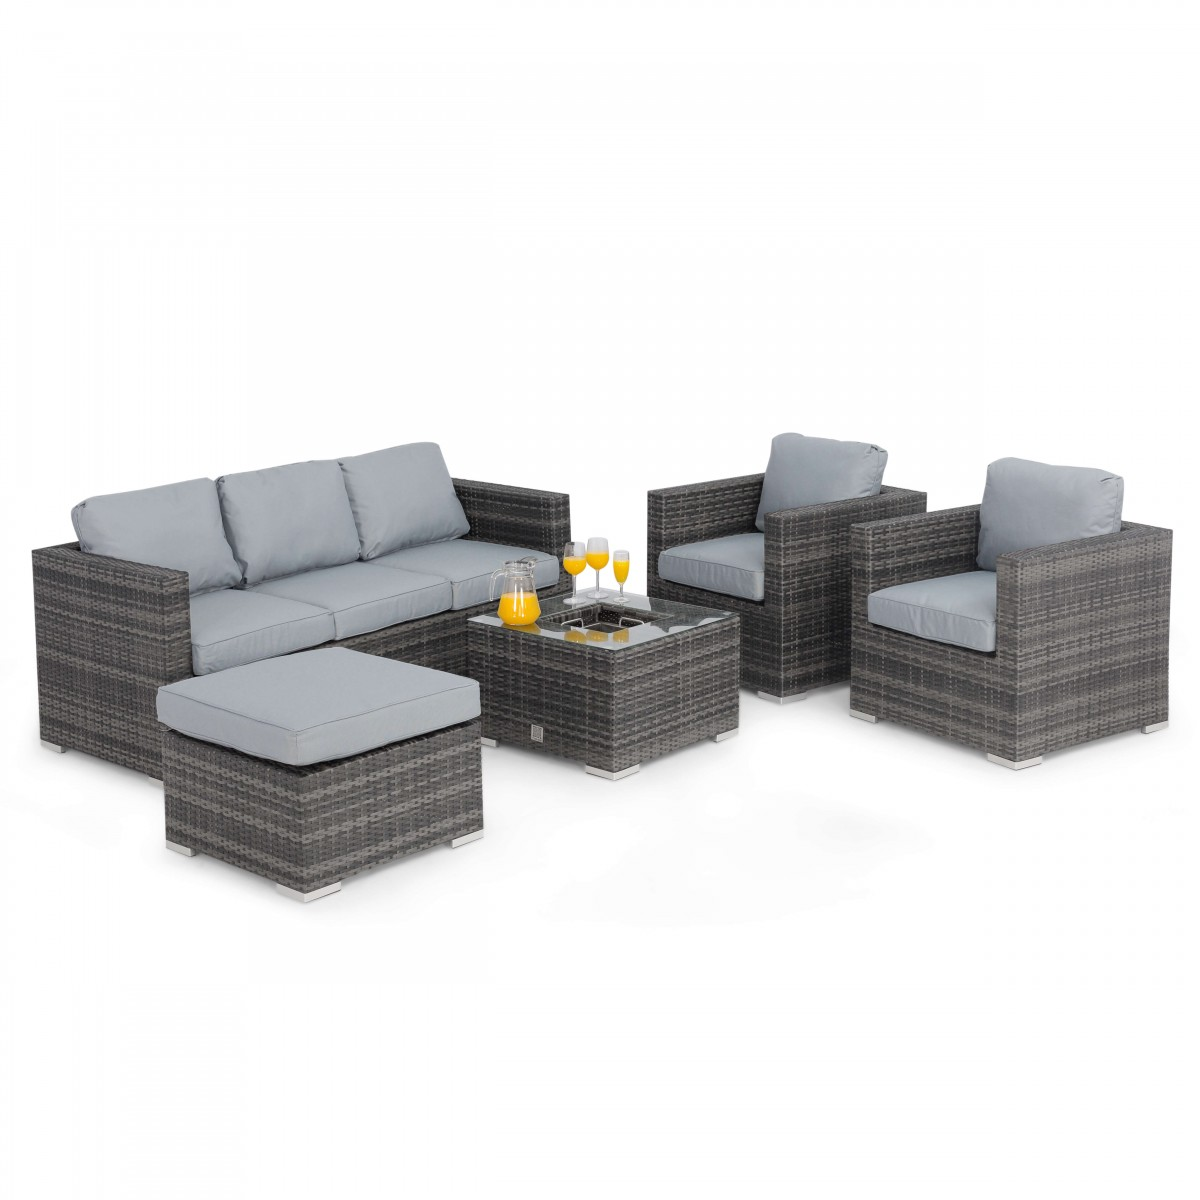 maze rattan furniture georgia 3 seat grey sofa set fla-102525 ICAFOXN